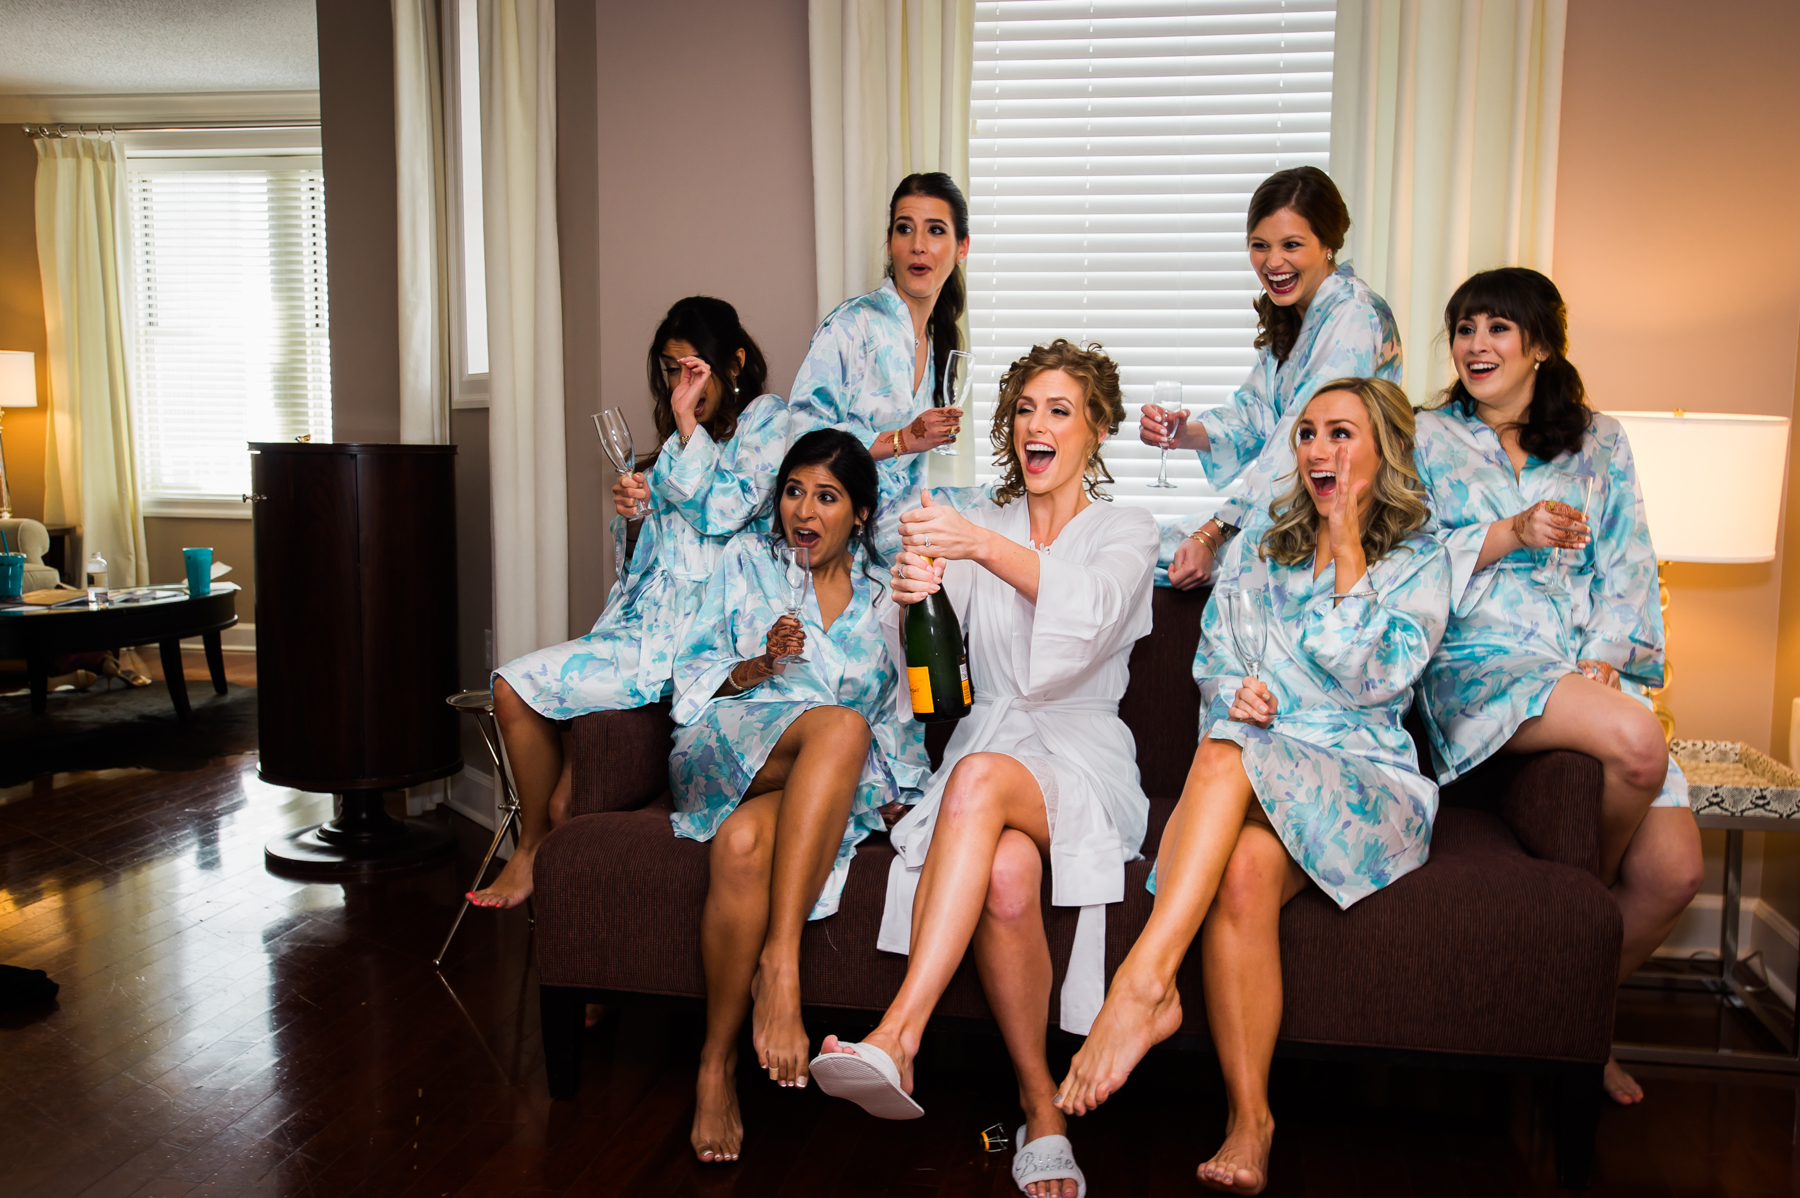 How sweet is this photo of the girls celebrating pre ceremony!